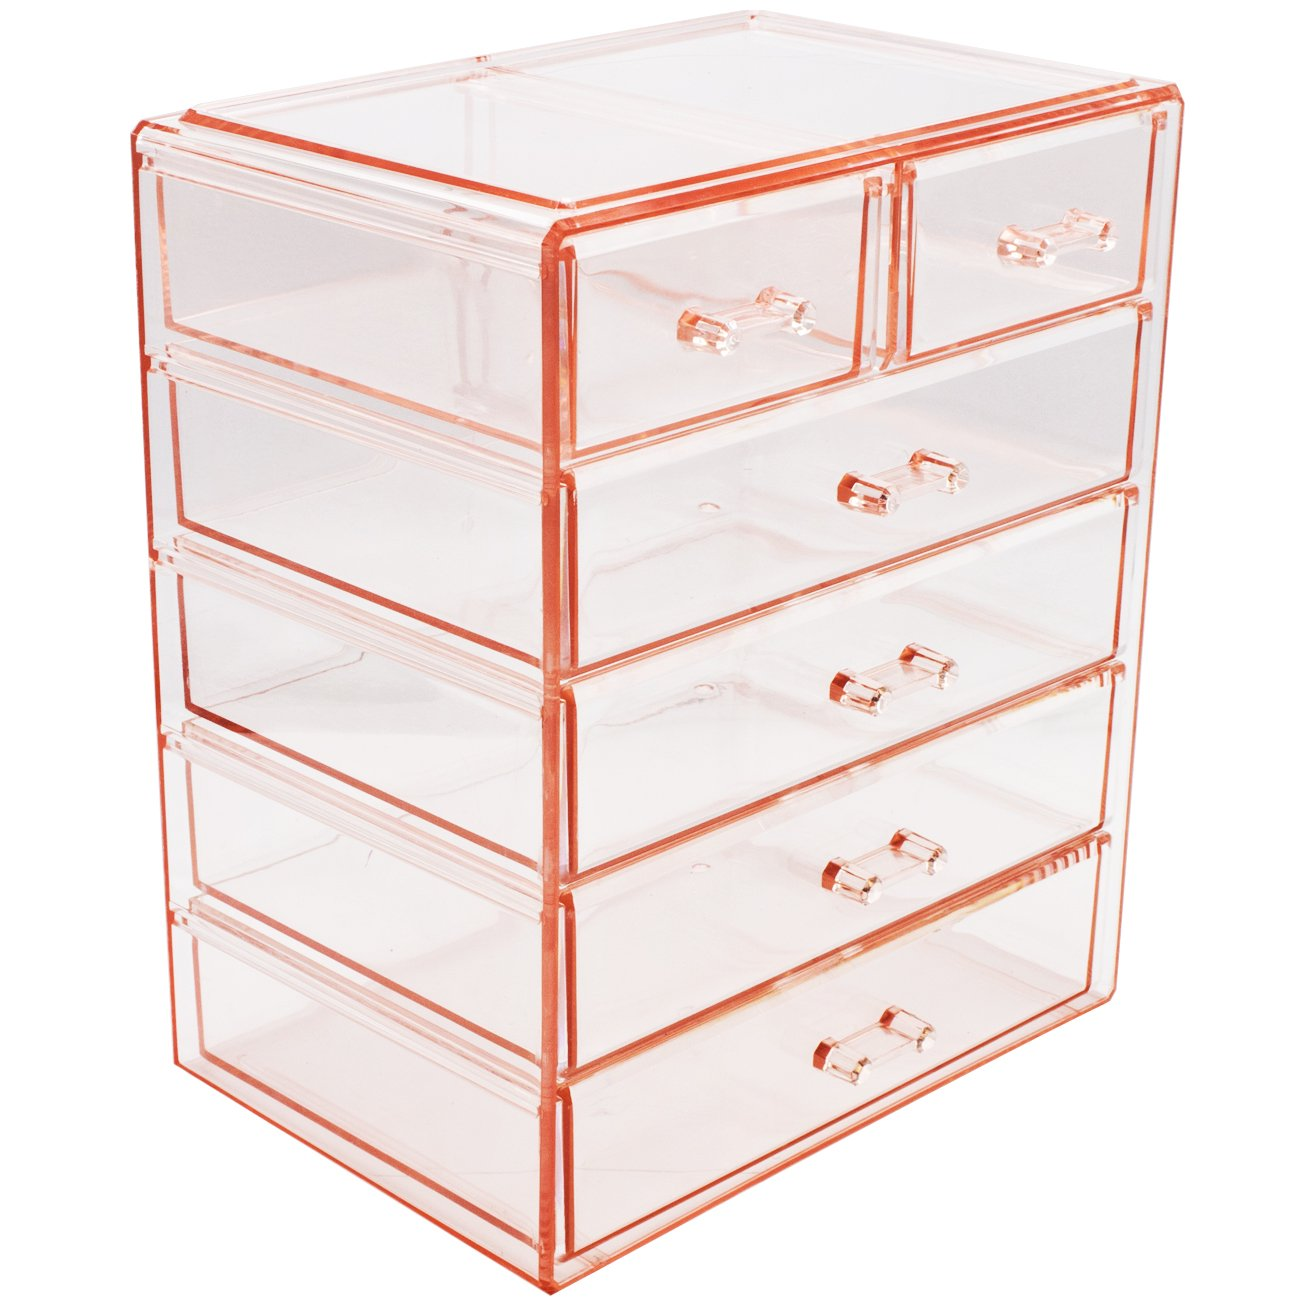 Sorbus Cosmetics Makeup and Jewelry Big Pink Storage Case Display- 4 Large and 2 Small Drawers Space- Saving, Stylish Acrylic Bathroom Case